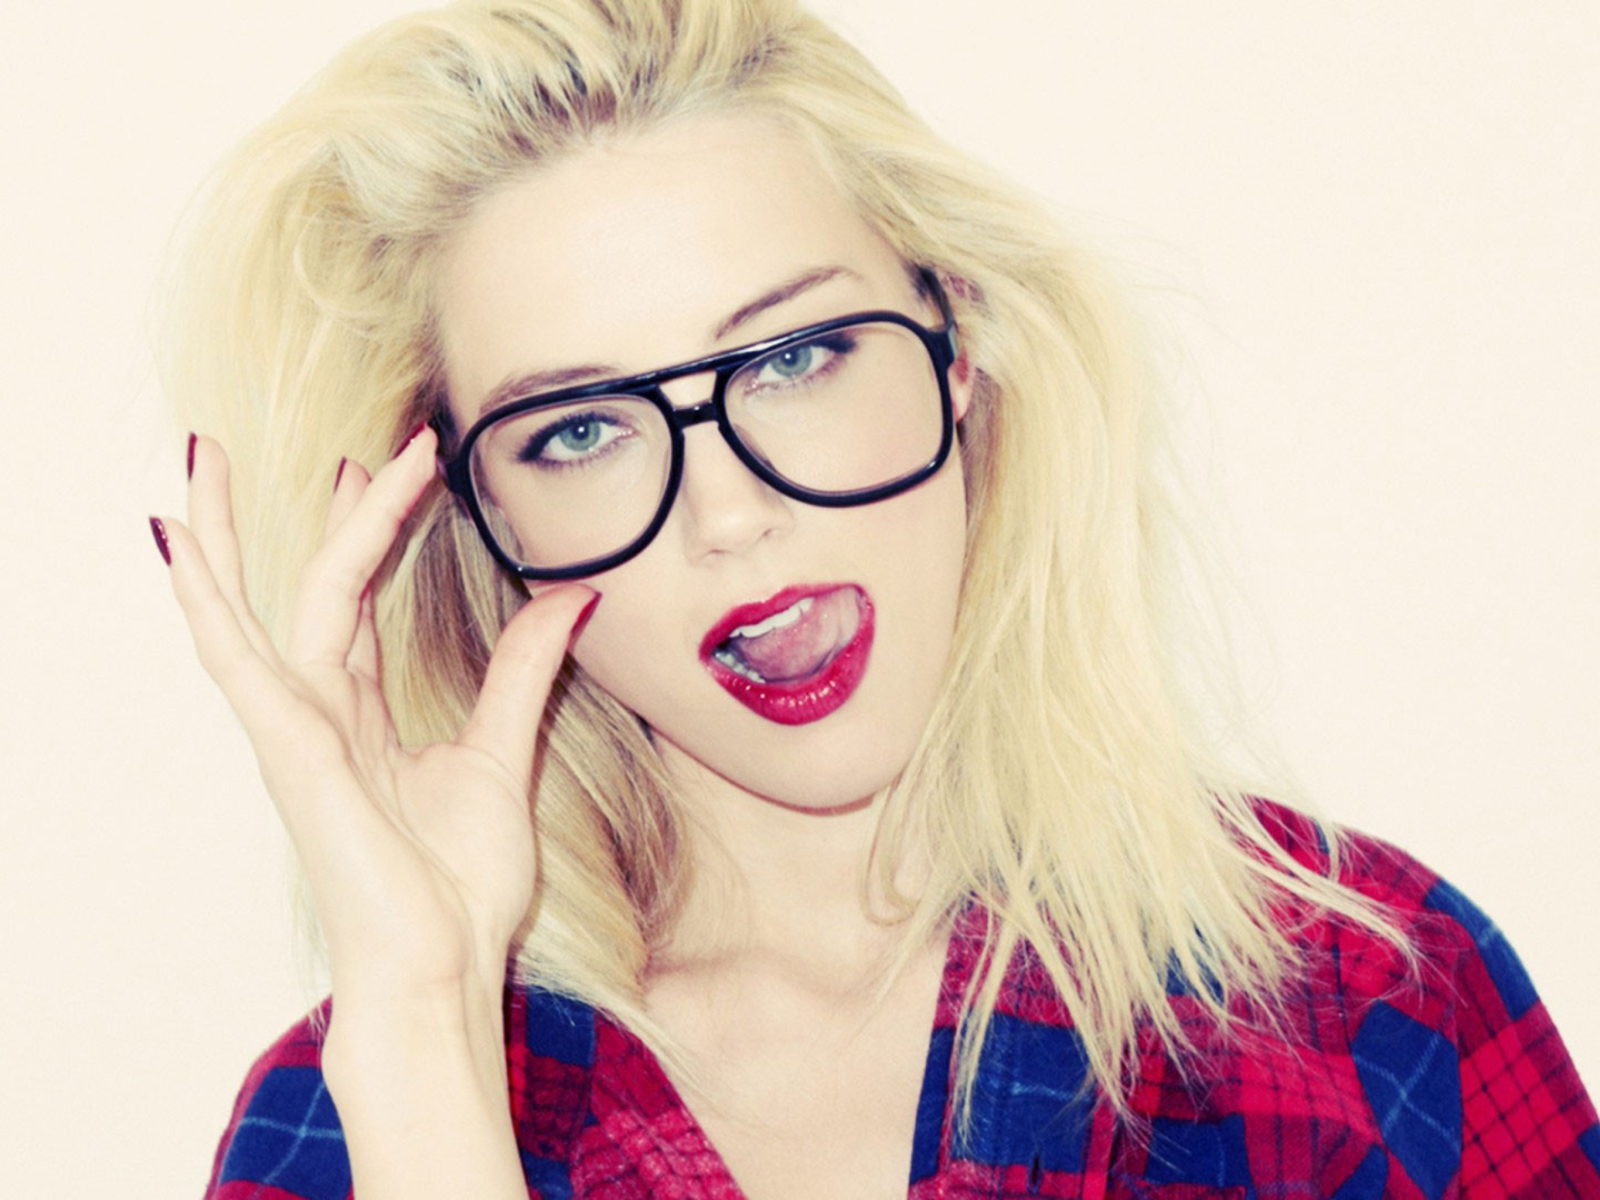 oral-satisfaction-hot-blonde-glasses-builders